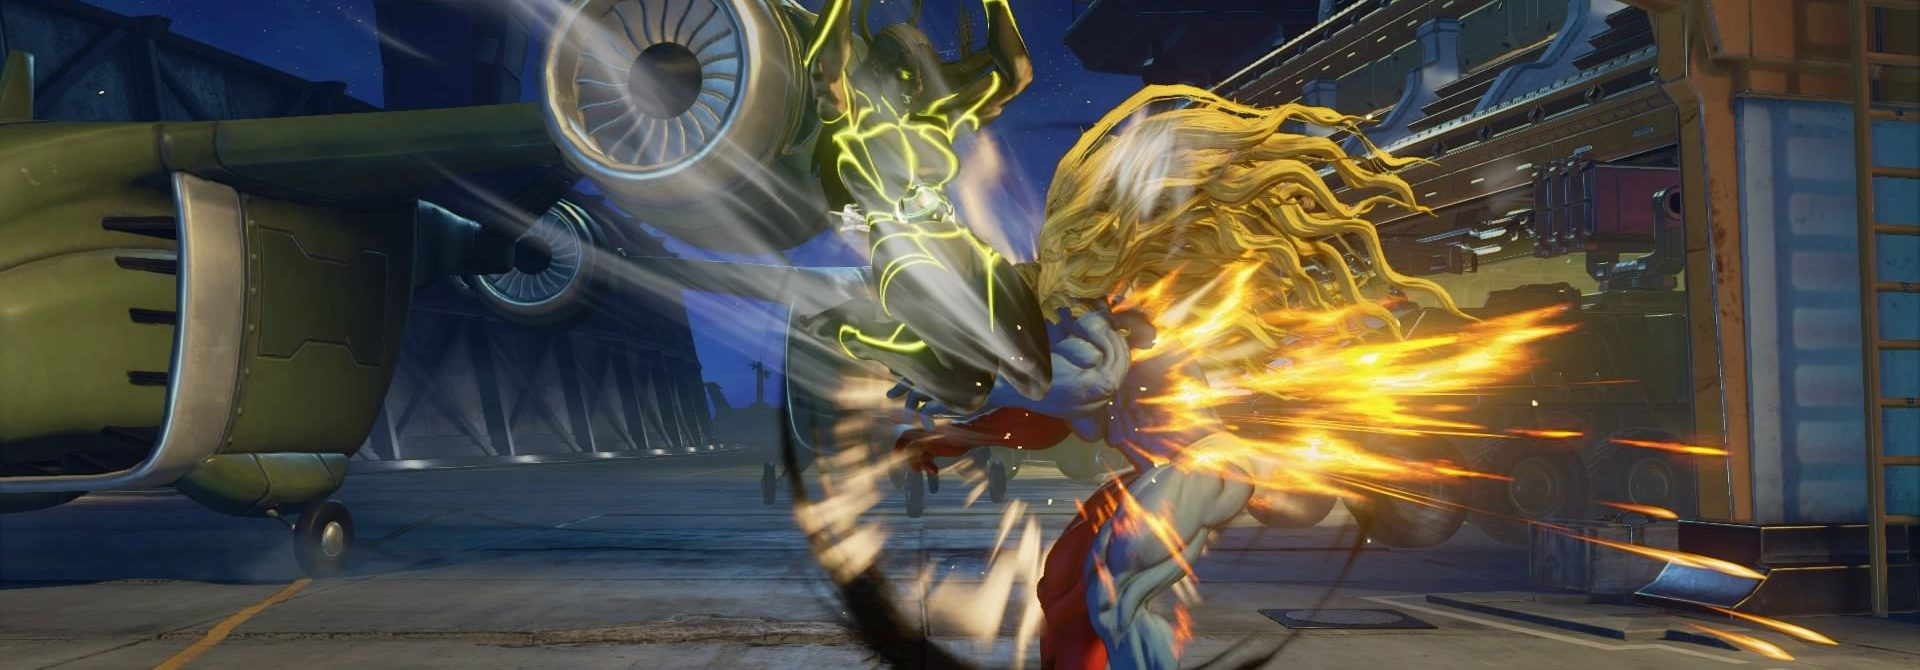 Street Fighter V Champion Edition Launches On PS4 And Steam